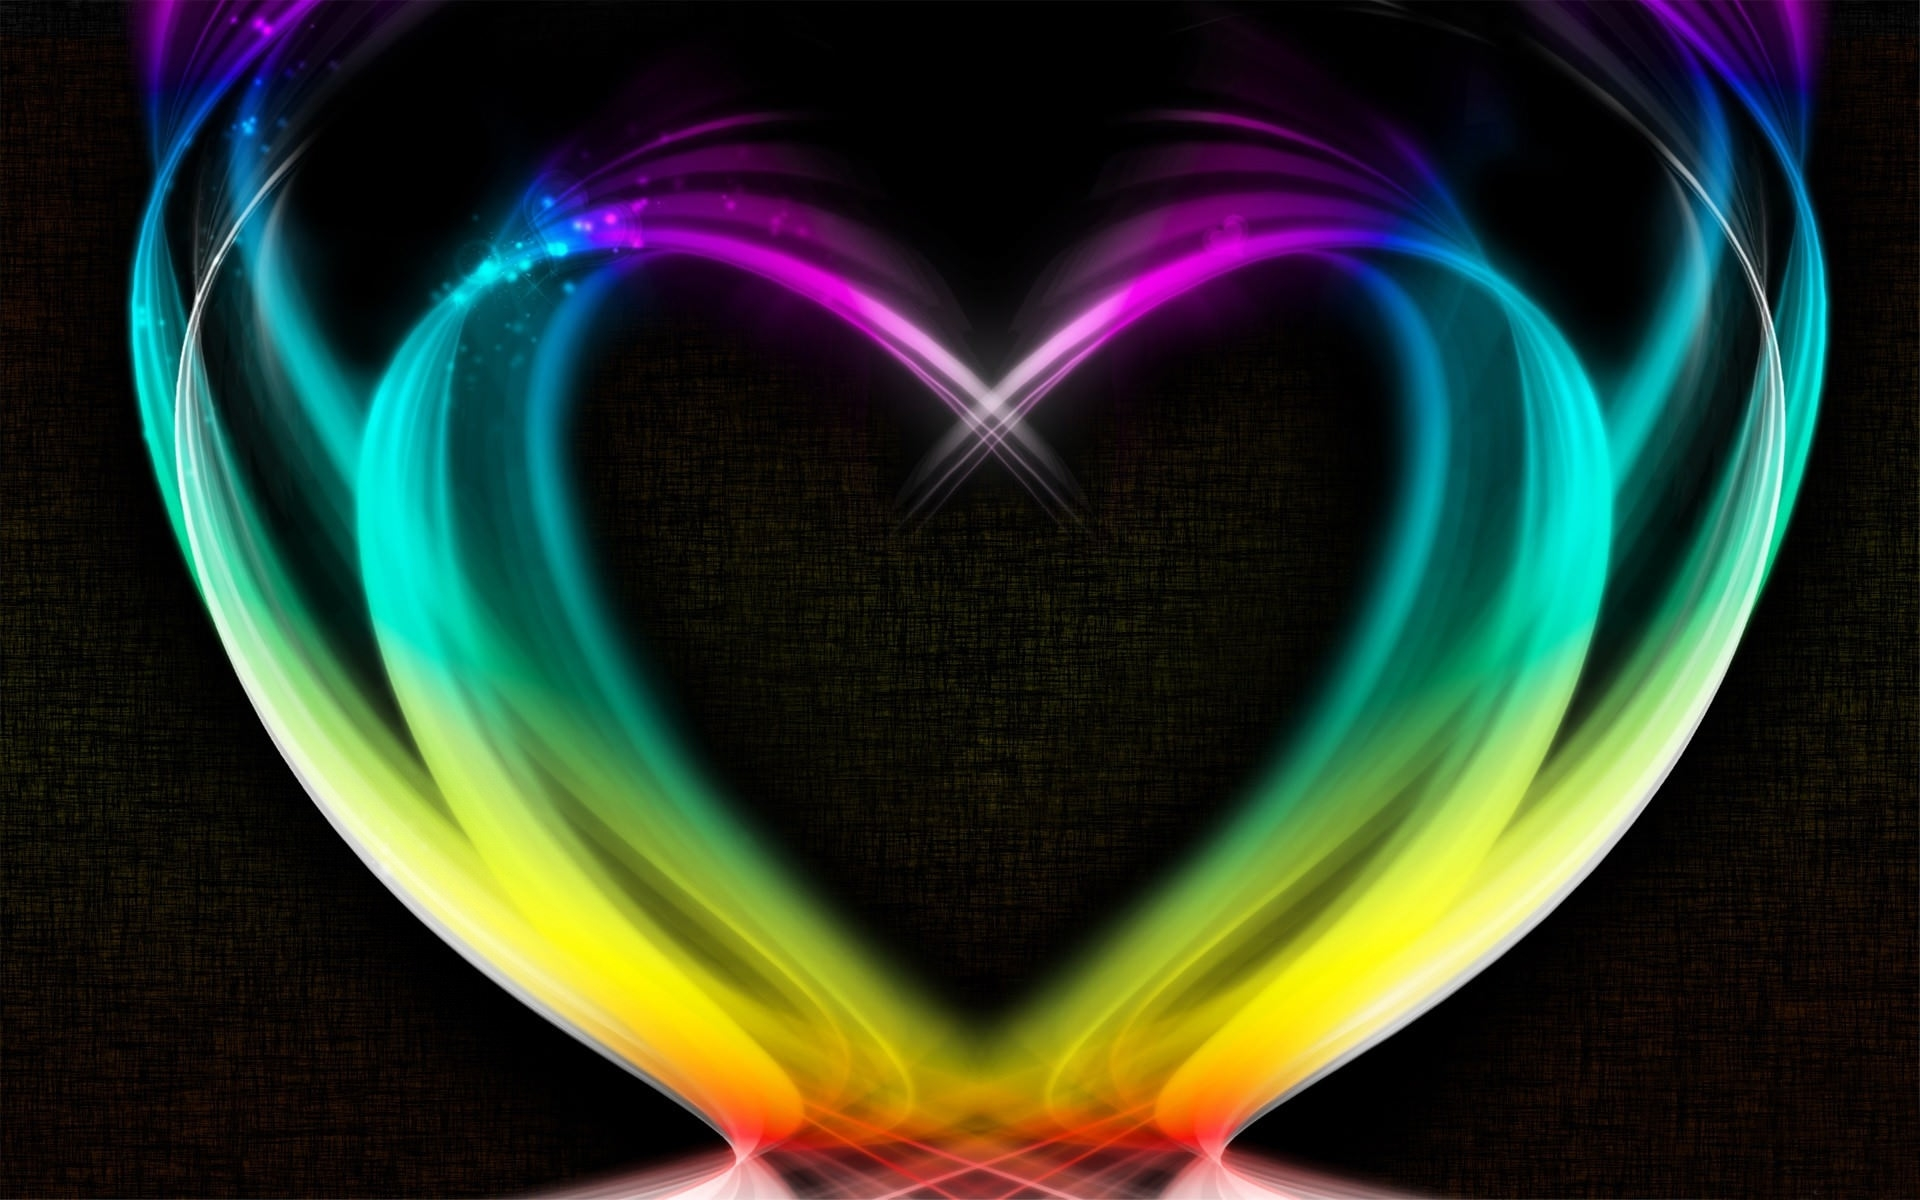 heart shape rainbow colored wallpaper